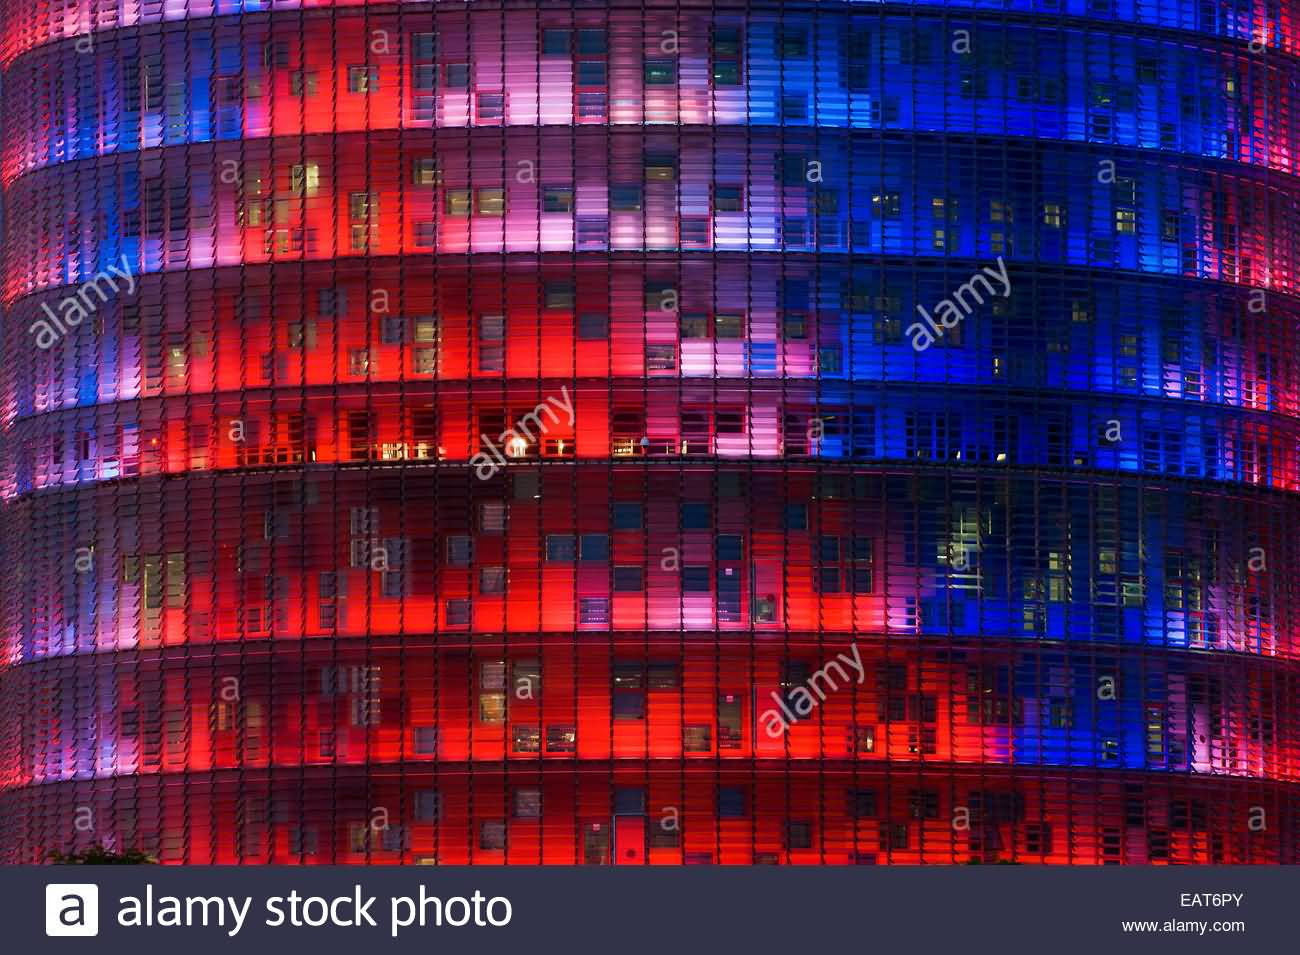 50 Incredible Torre Agbar Pictures And Images